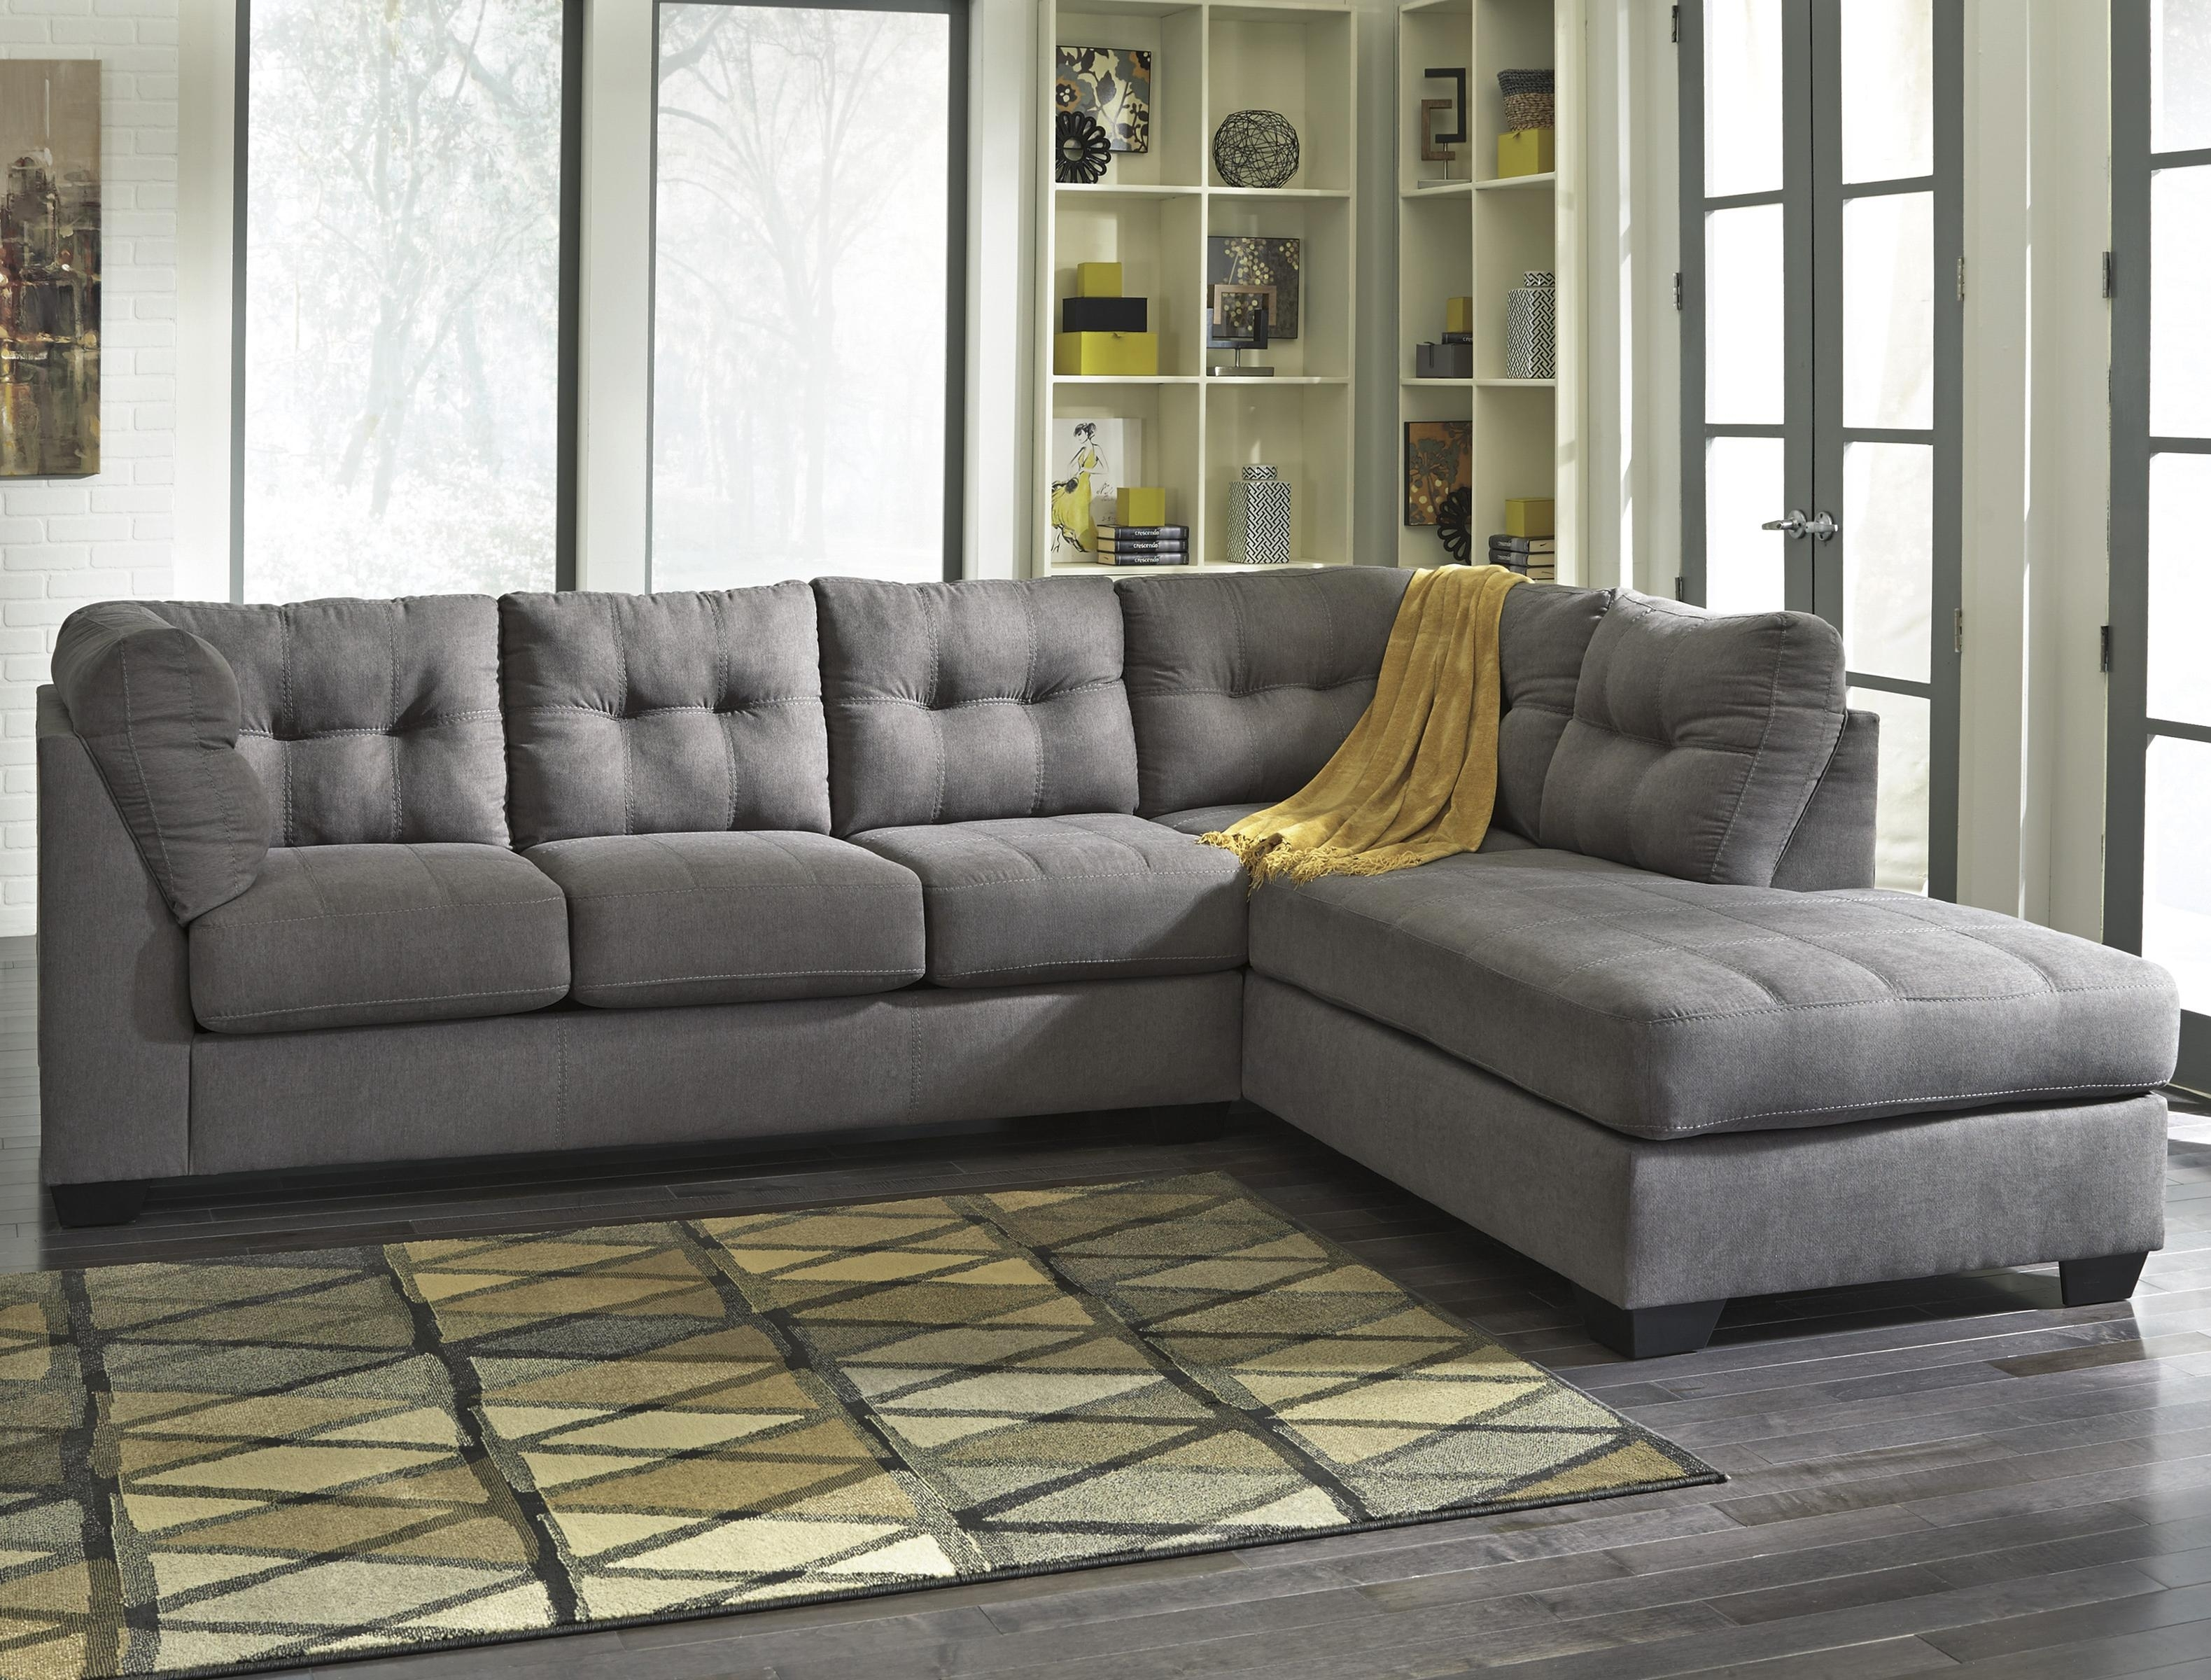 Benchcraft Maier – Charcoal 2 Piece Sectional With Right Chaise Throughout Glamour Ii 3 Piece Sectionals (View 13 of 25)